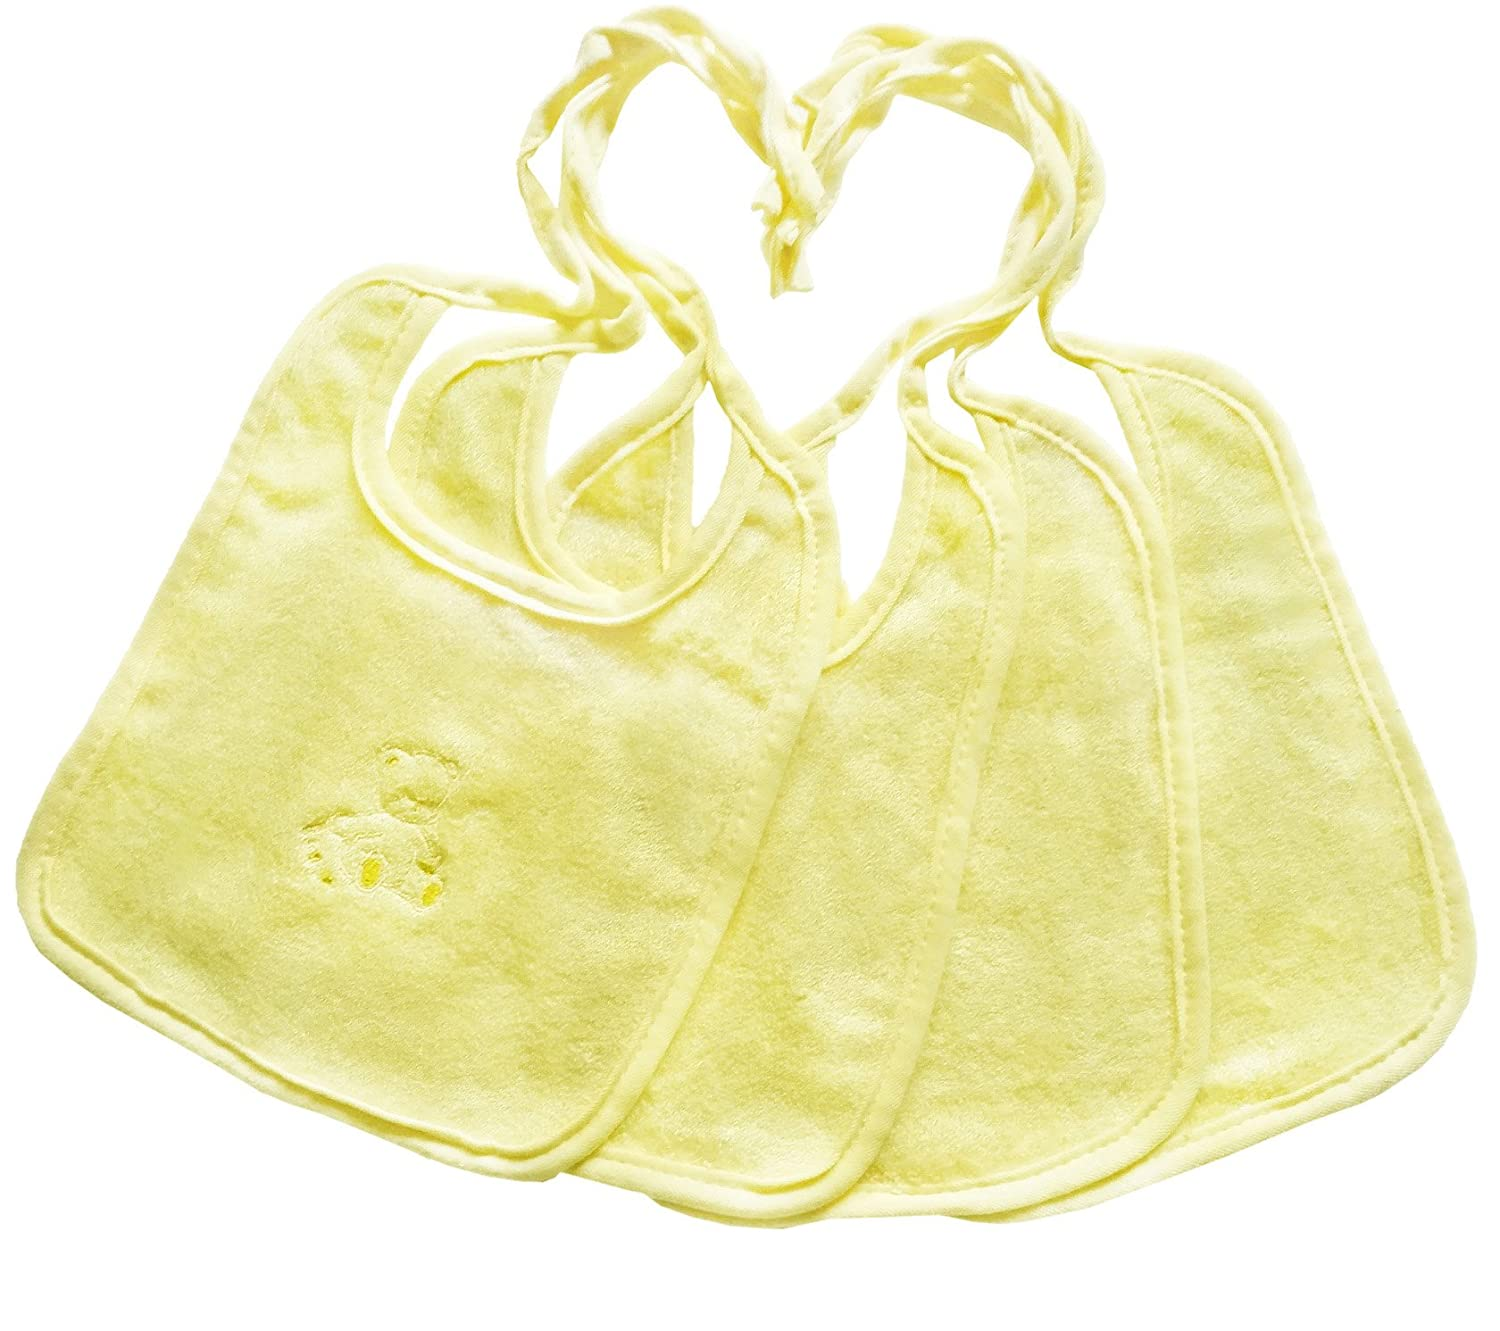 BambooMoon Baby Bibs and Burp Cloths. 100% Bamboo. Unbelievably Soft, Antibacterial, Naturally Anti-fungal, Absorbent, Durable and Sustainable. Set of 4. Greenthology Inc.